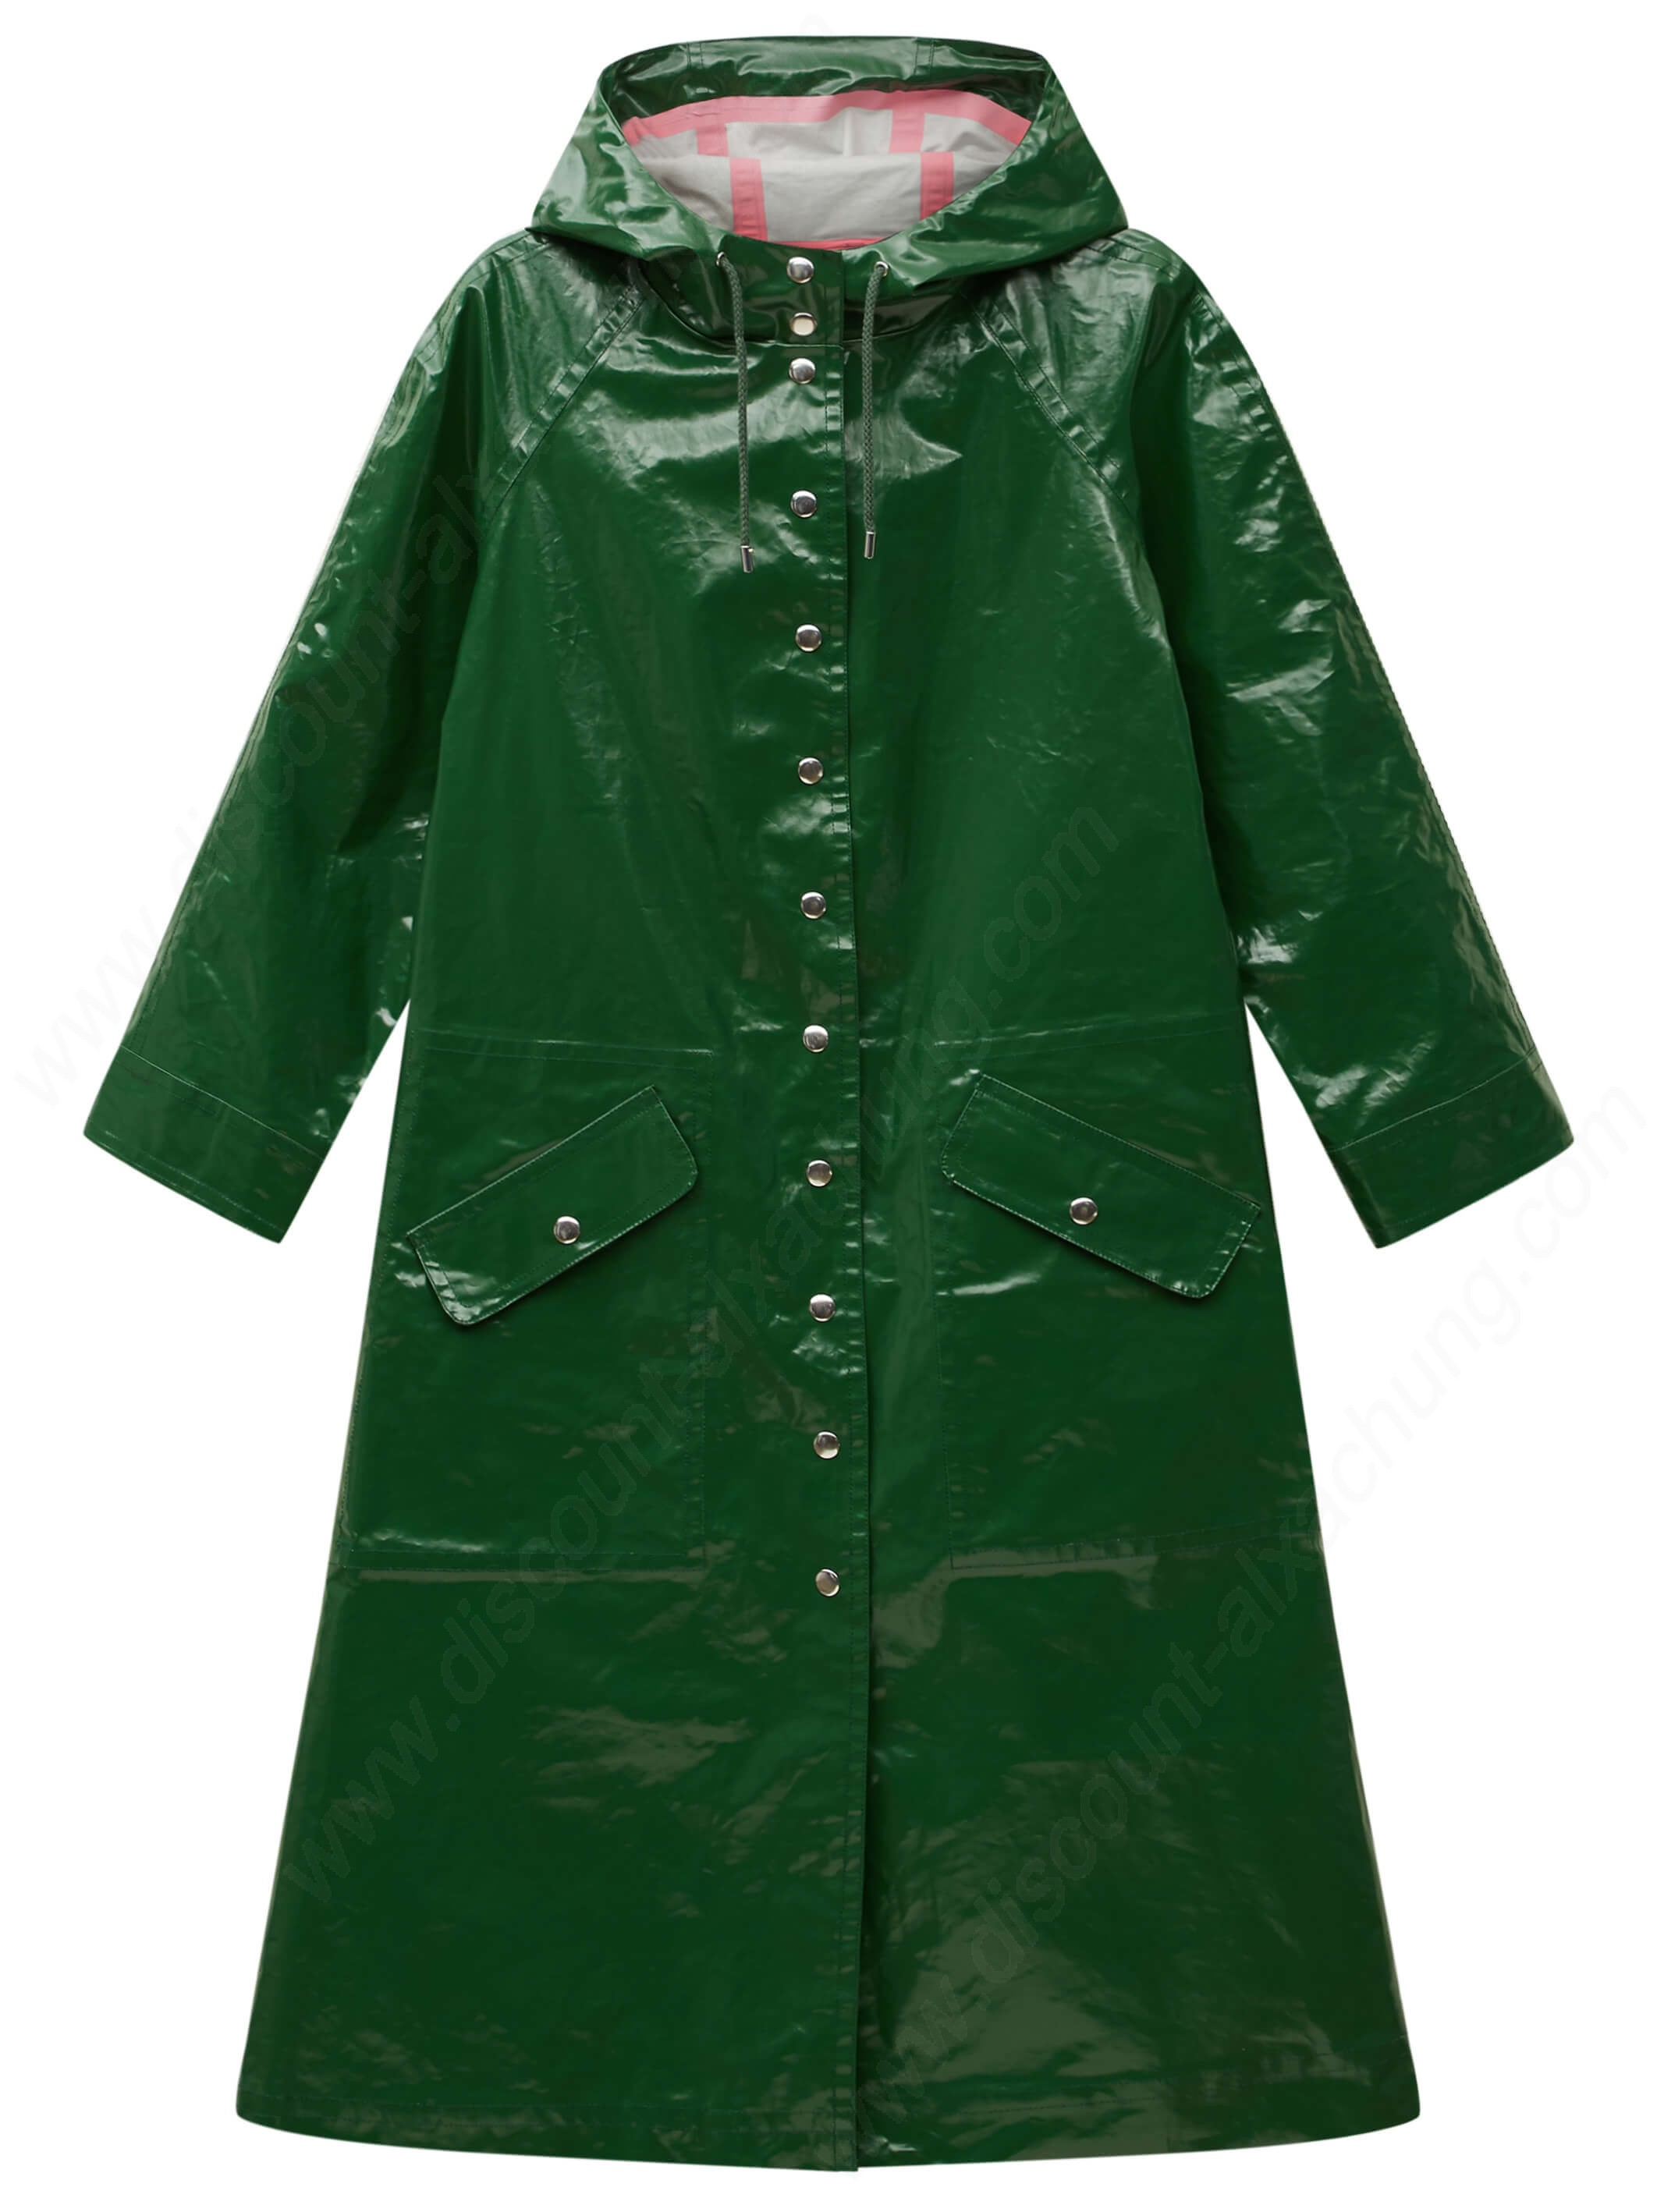 Alexachung Hooded Raincoat - Alexachung Hooded Raincoat